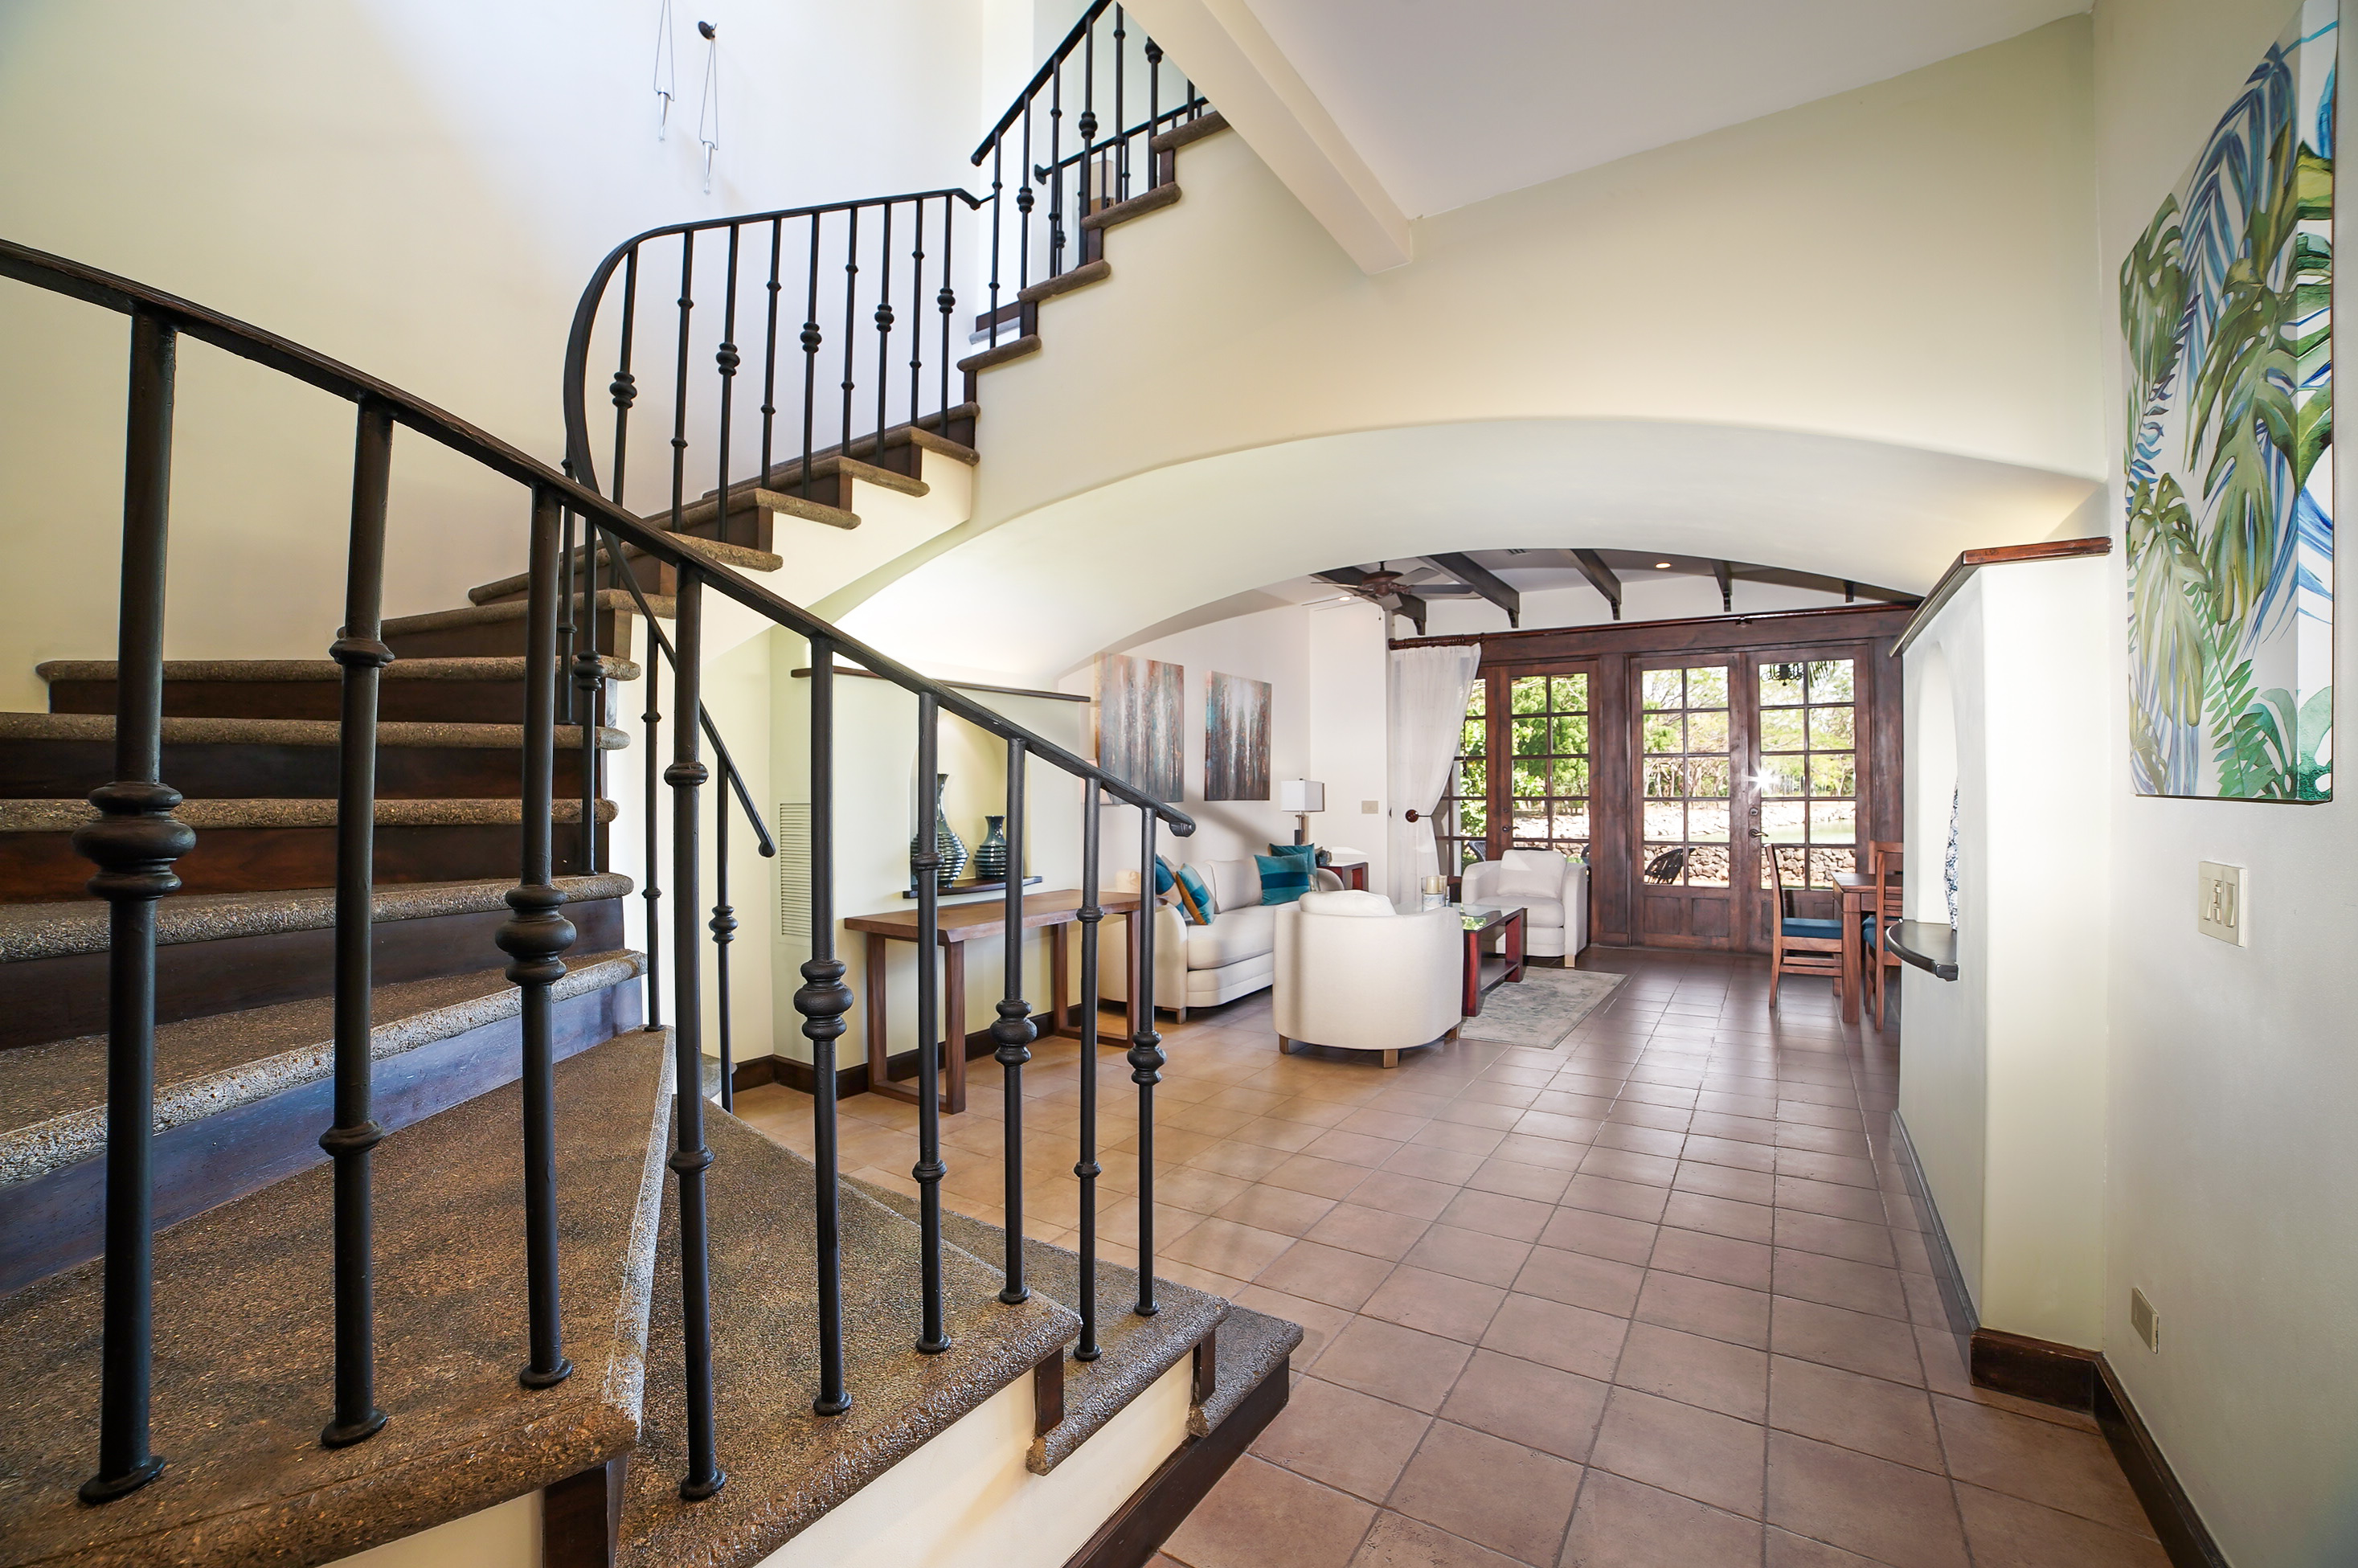 Spacious entrance with elevated ceilings